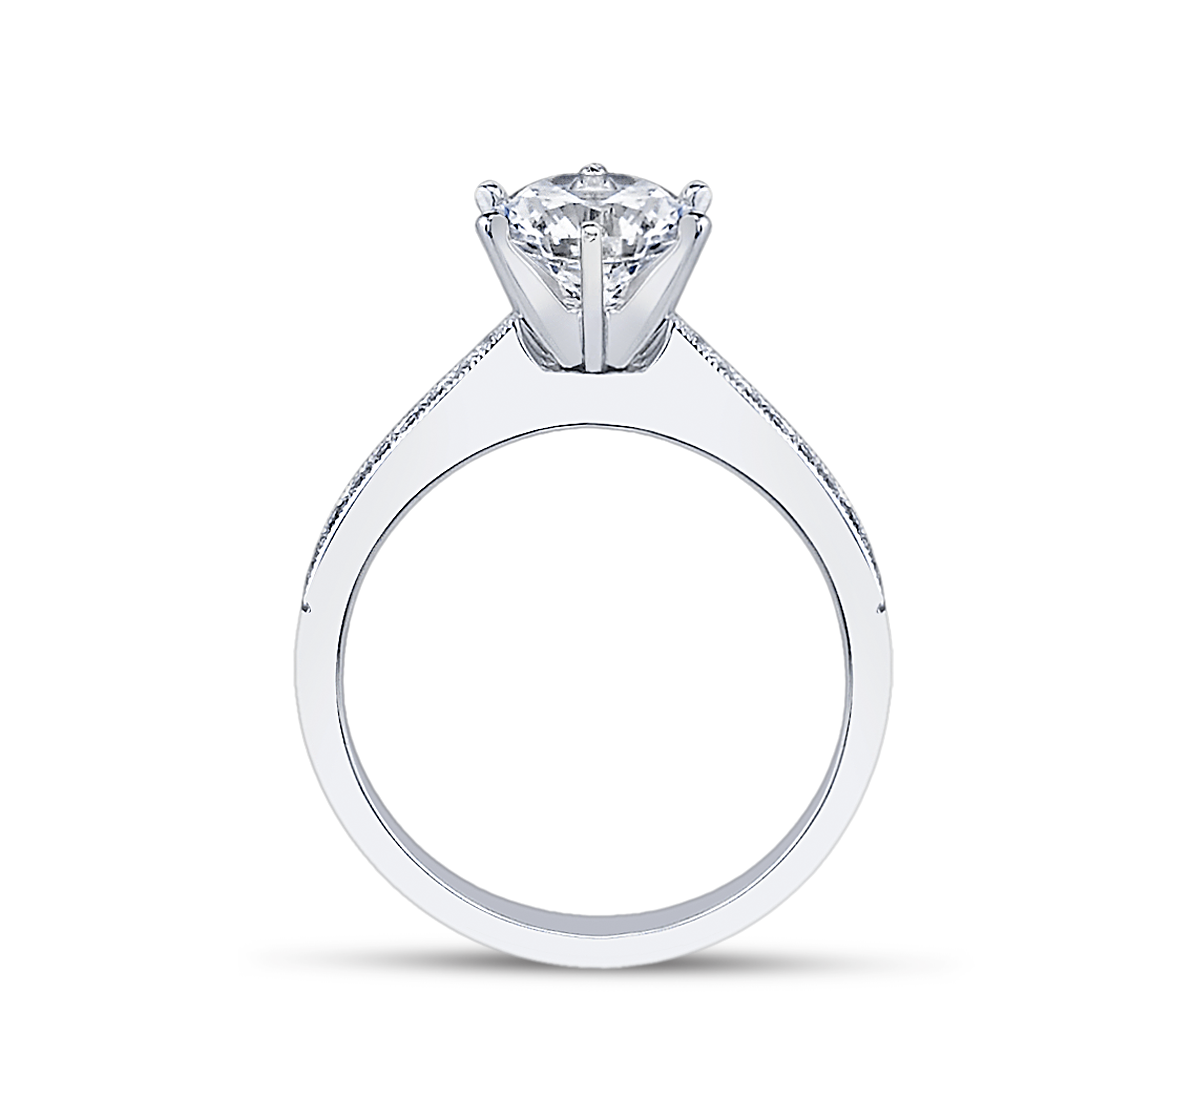 designs products dv engagement largedjfix vincent r marquise contour platinum mq marquis diamond by jewelry ss diana in cz ring